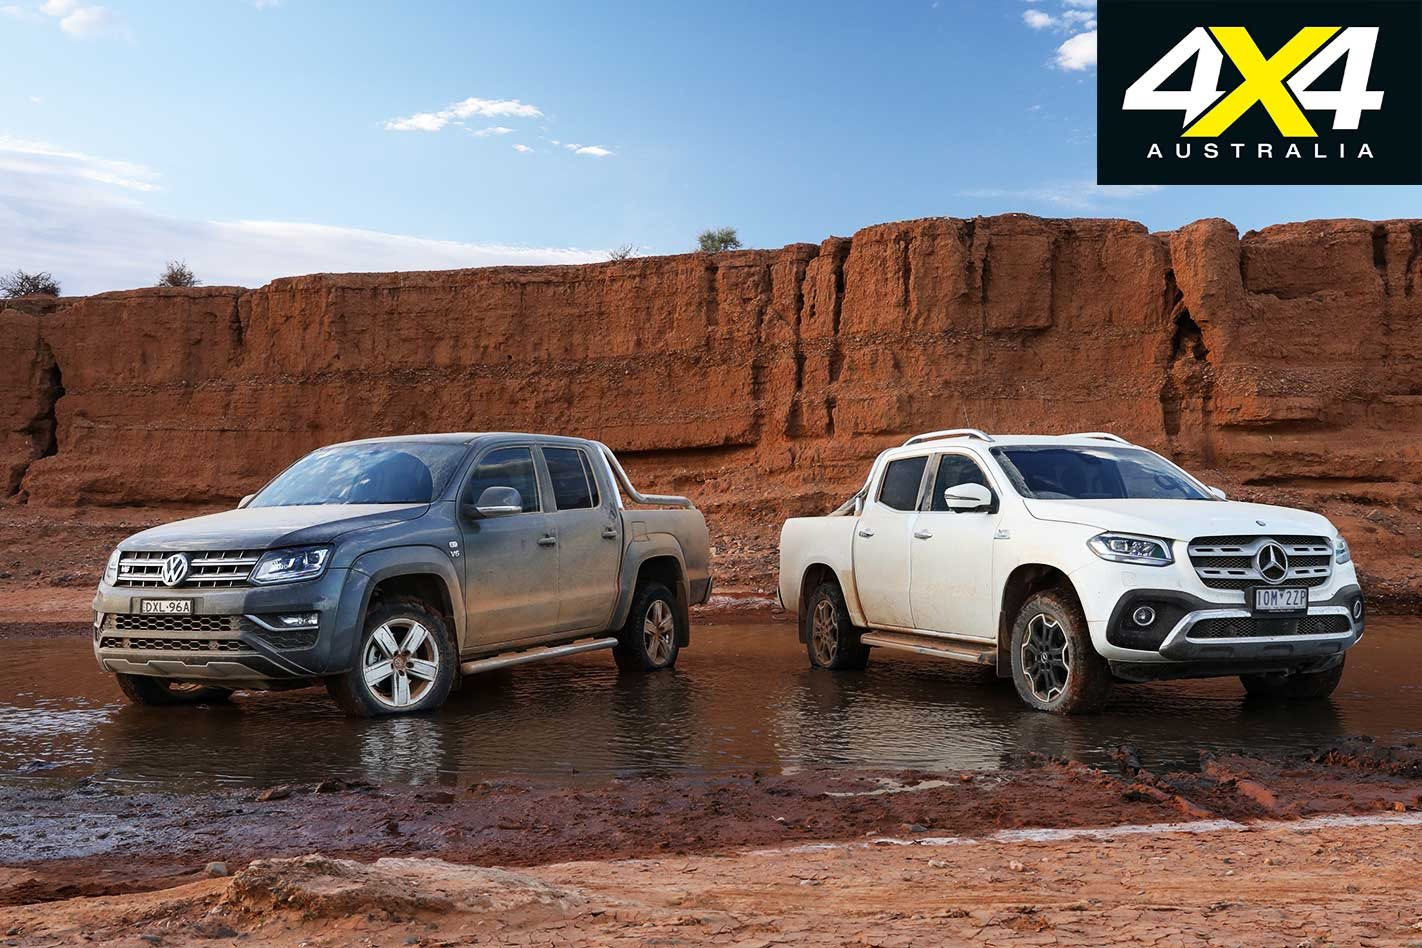 ada8e675ffac2b 2019 Volkswagen Amarok Ultimate 580 vs Mercedes-Benz X350d comparison 4x4  review